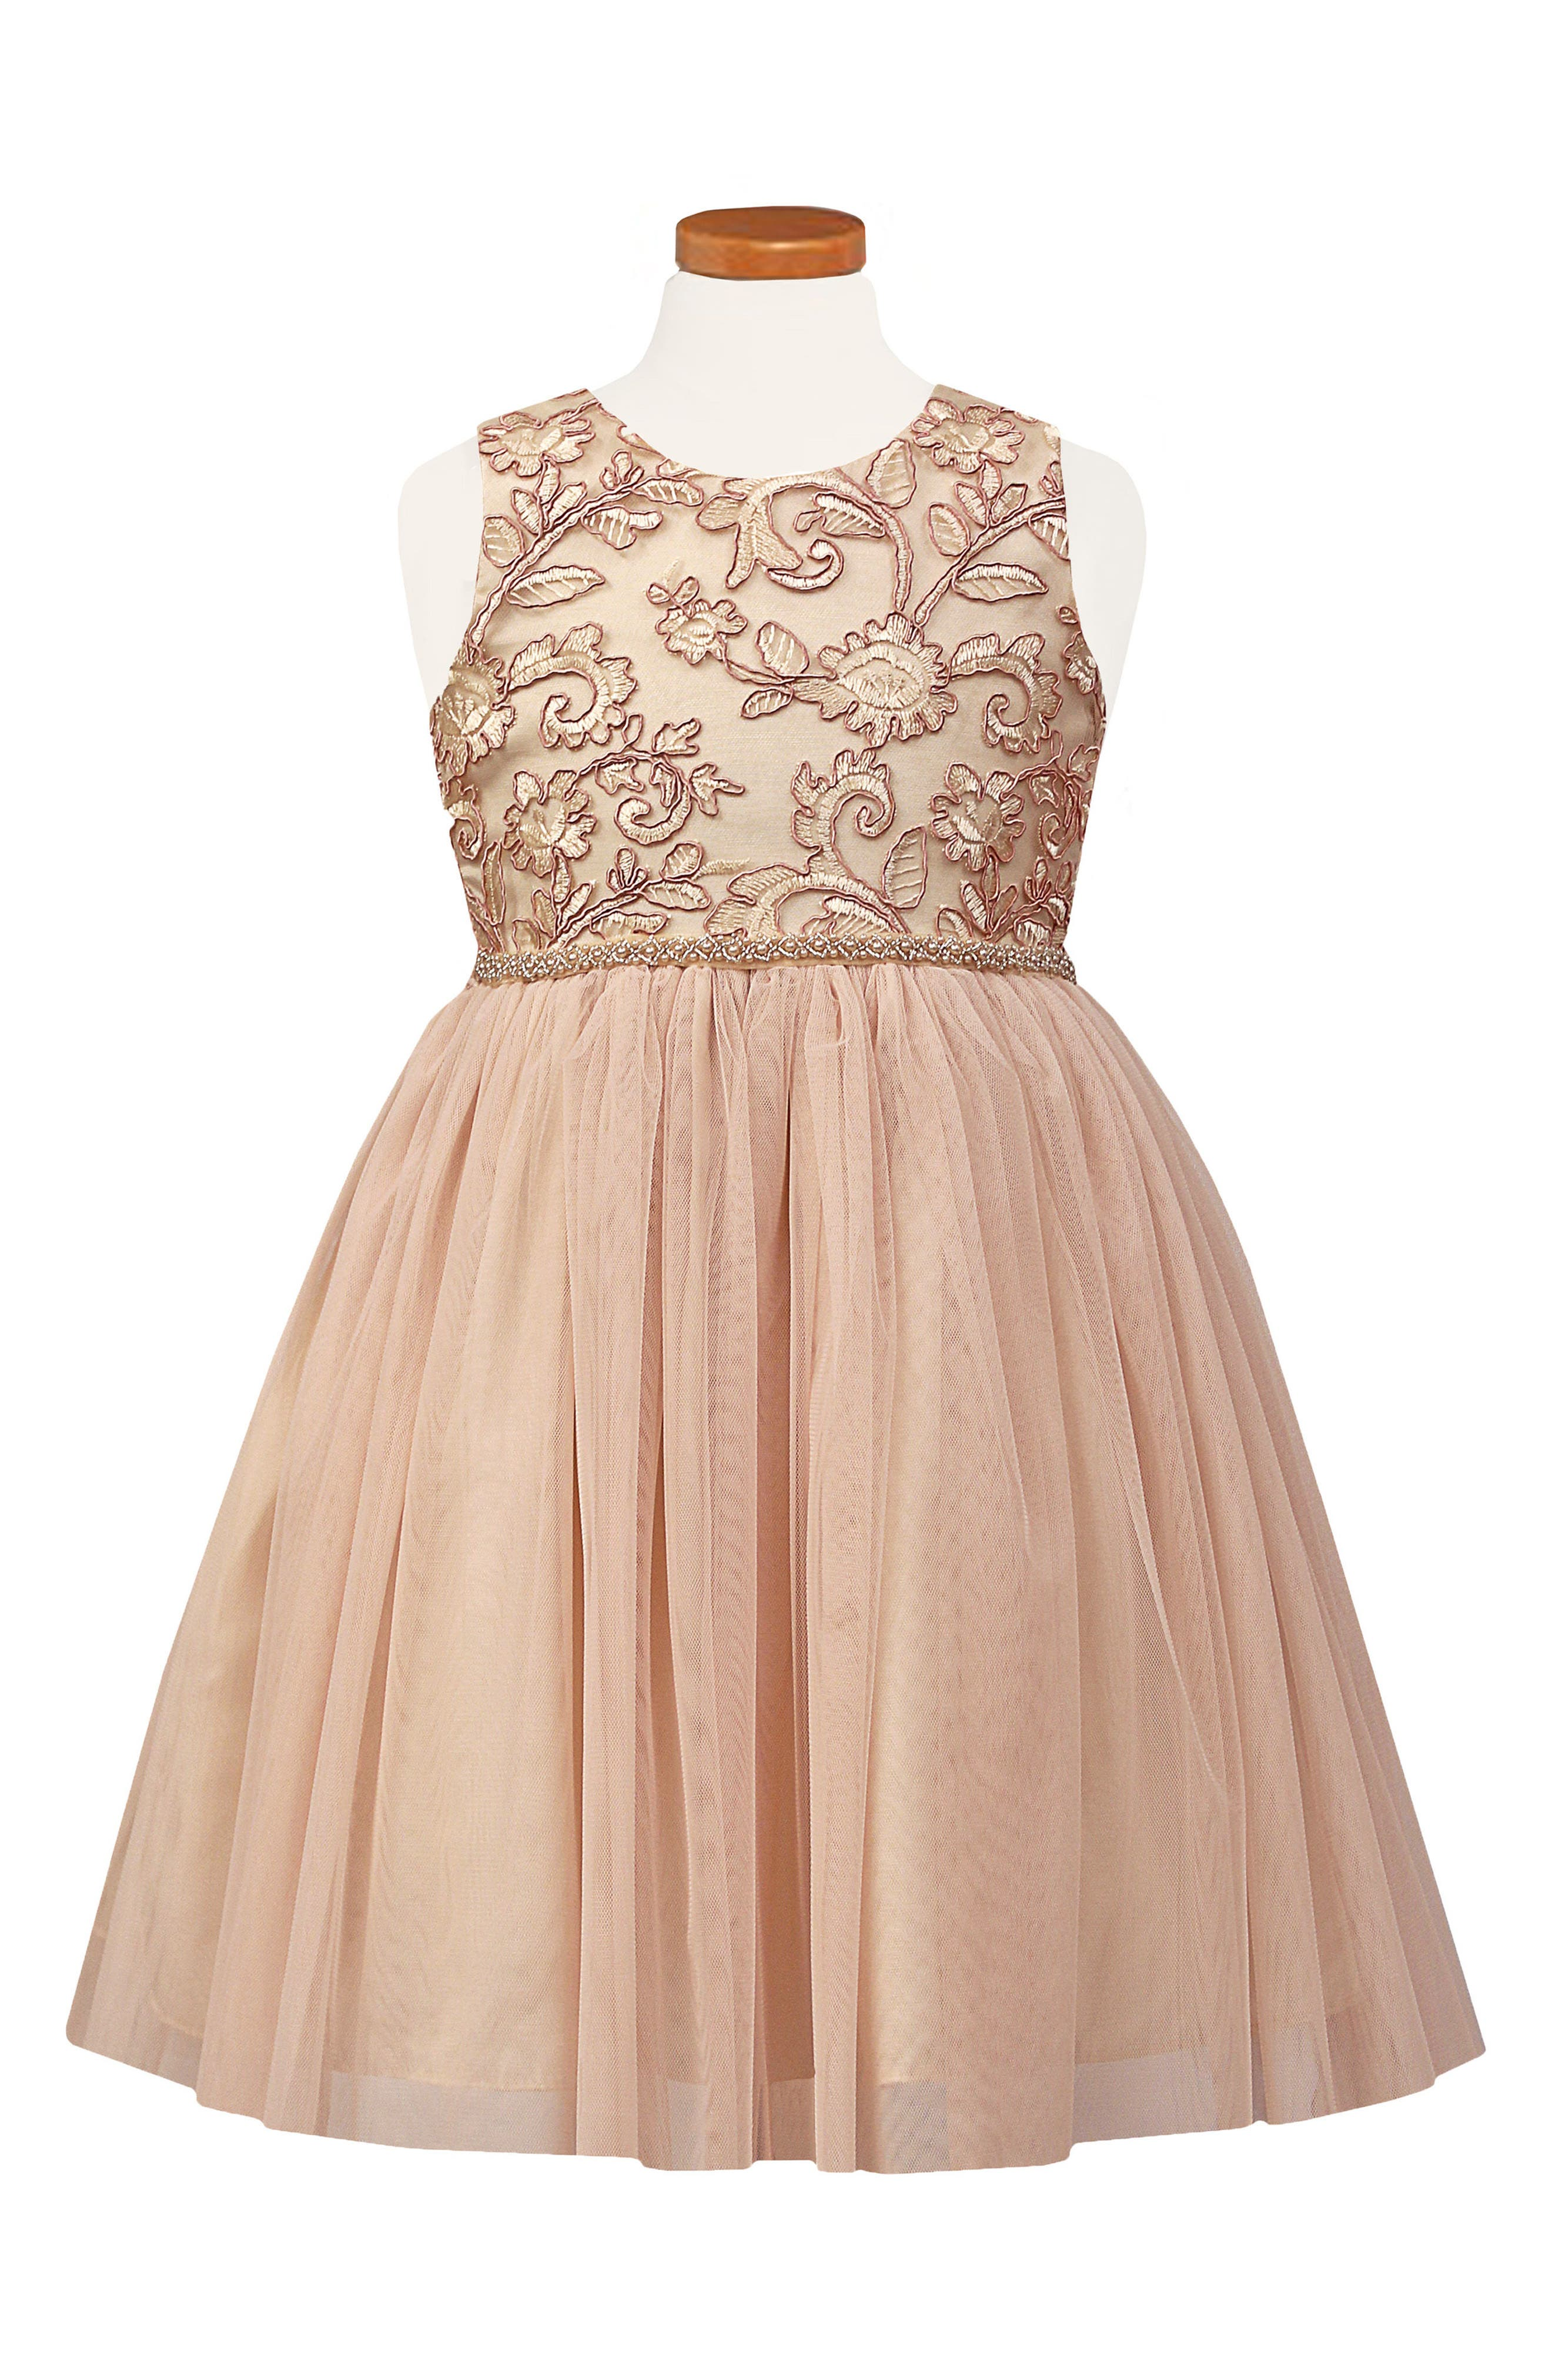 Embroidered Tulle Dress,                             Main thumbnail 1, color,                             Blush